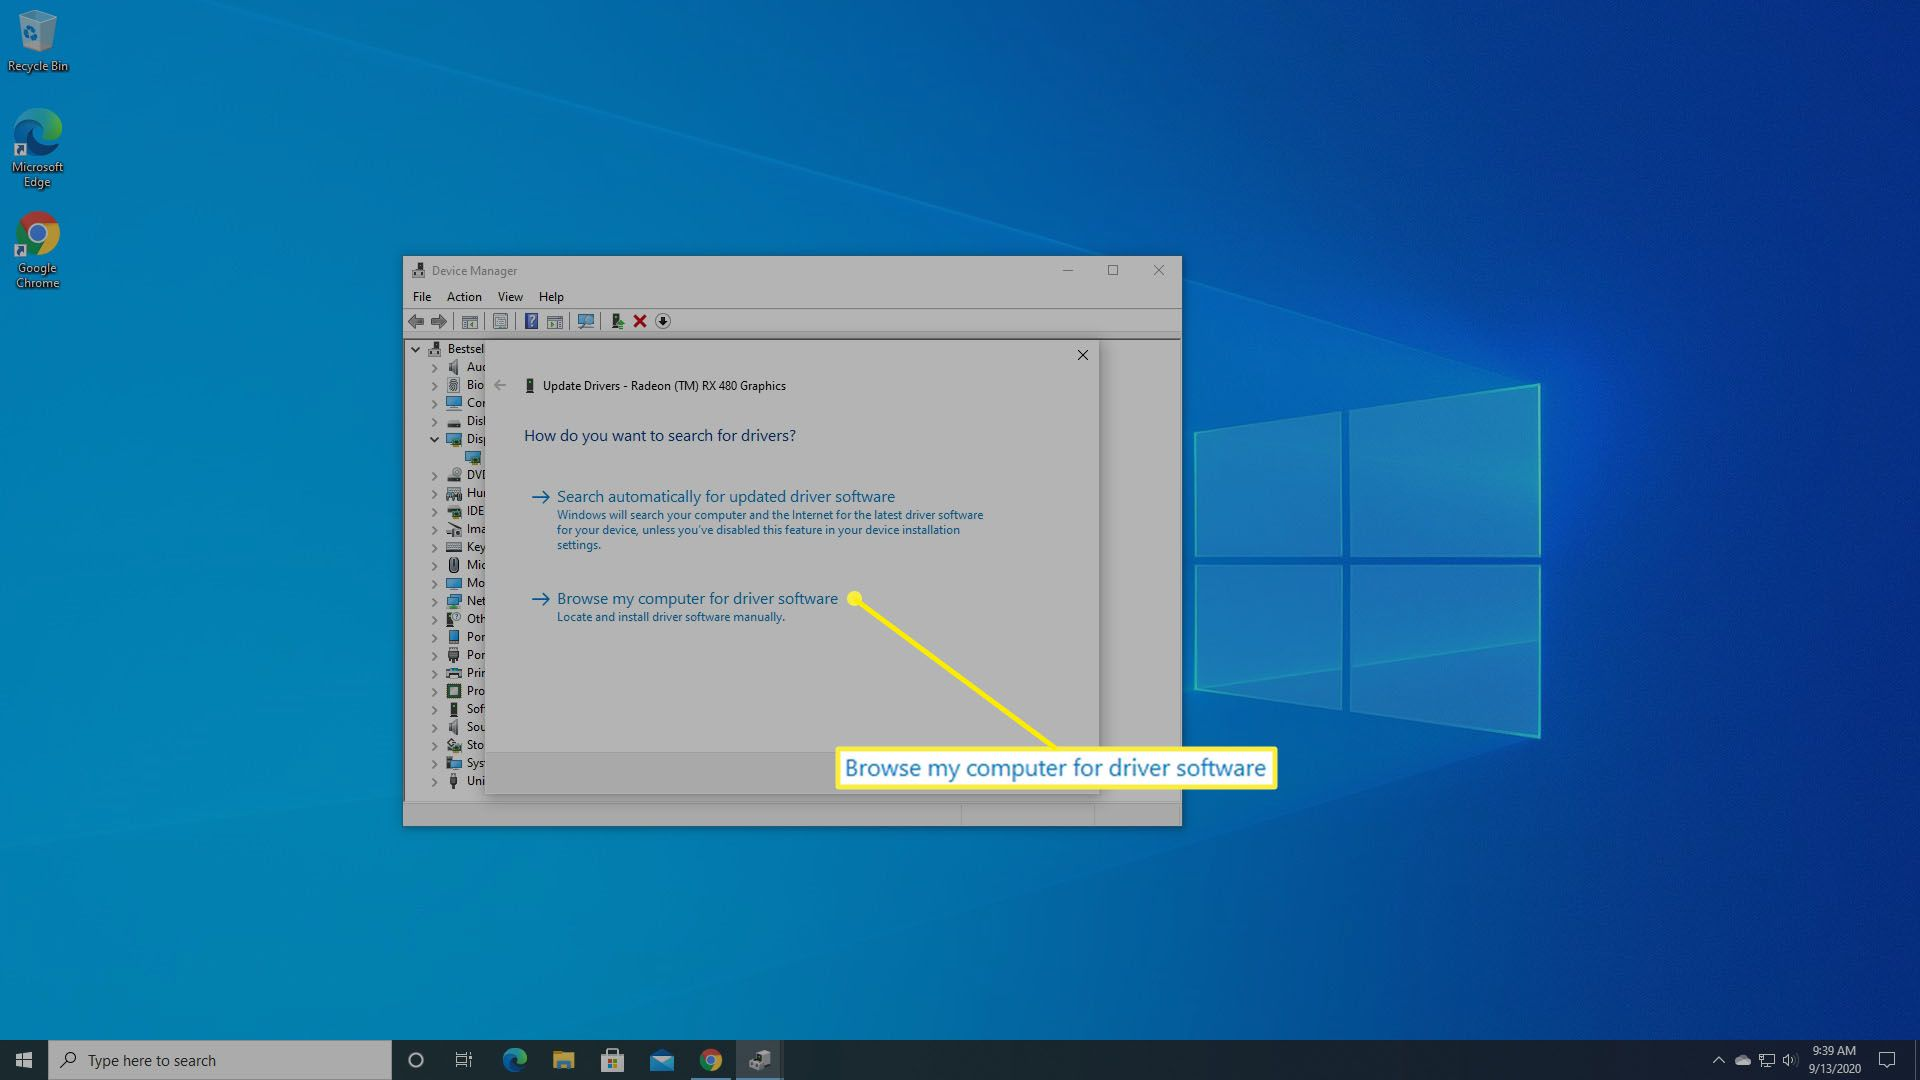 Ask Windows to browse your computer for drivers